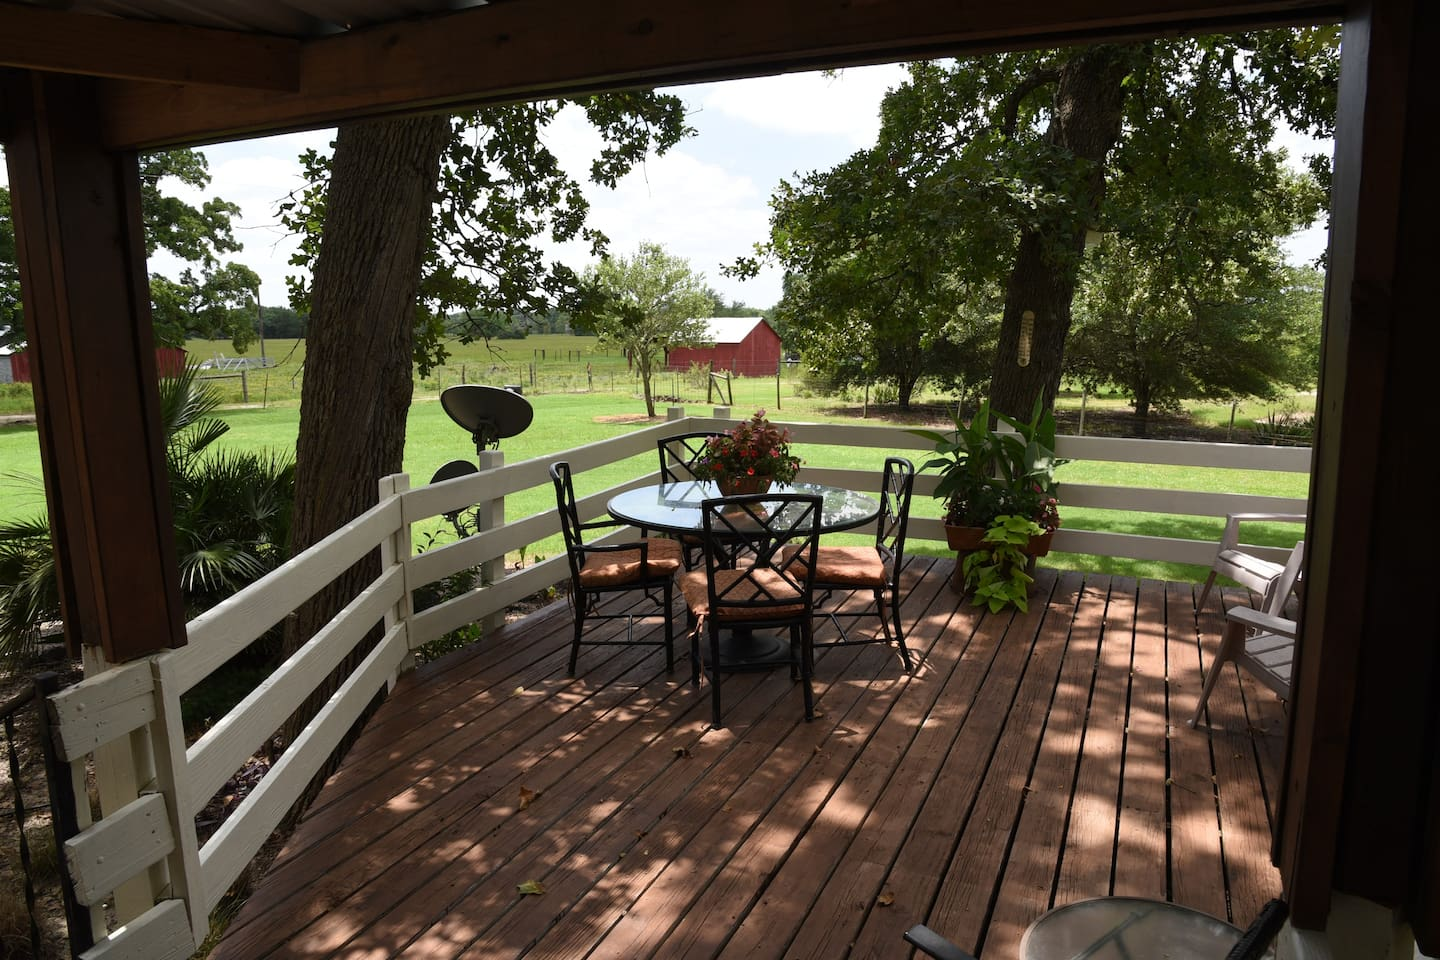 Chill out on the  back deck overlooking the 100 year old farmstead!